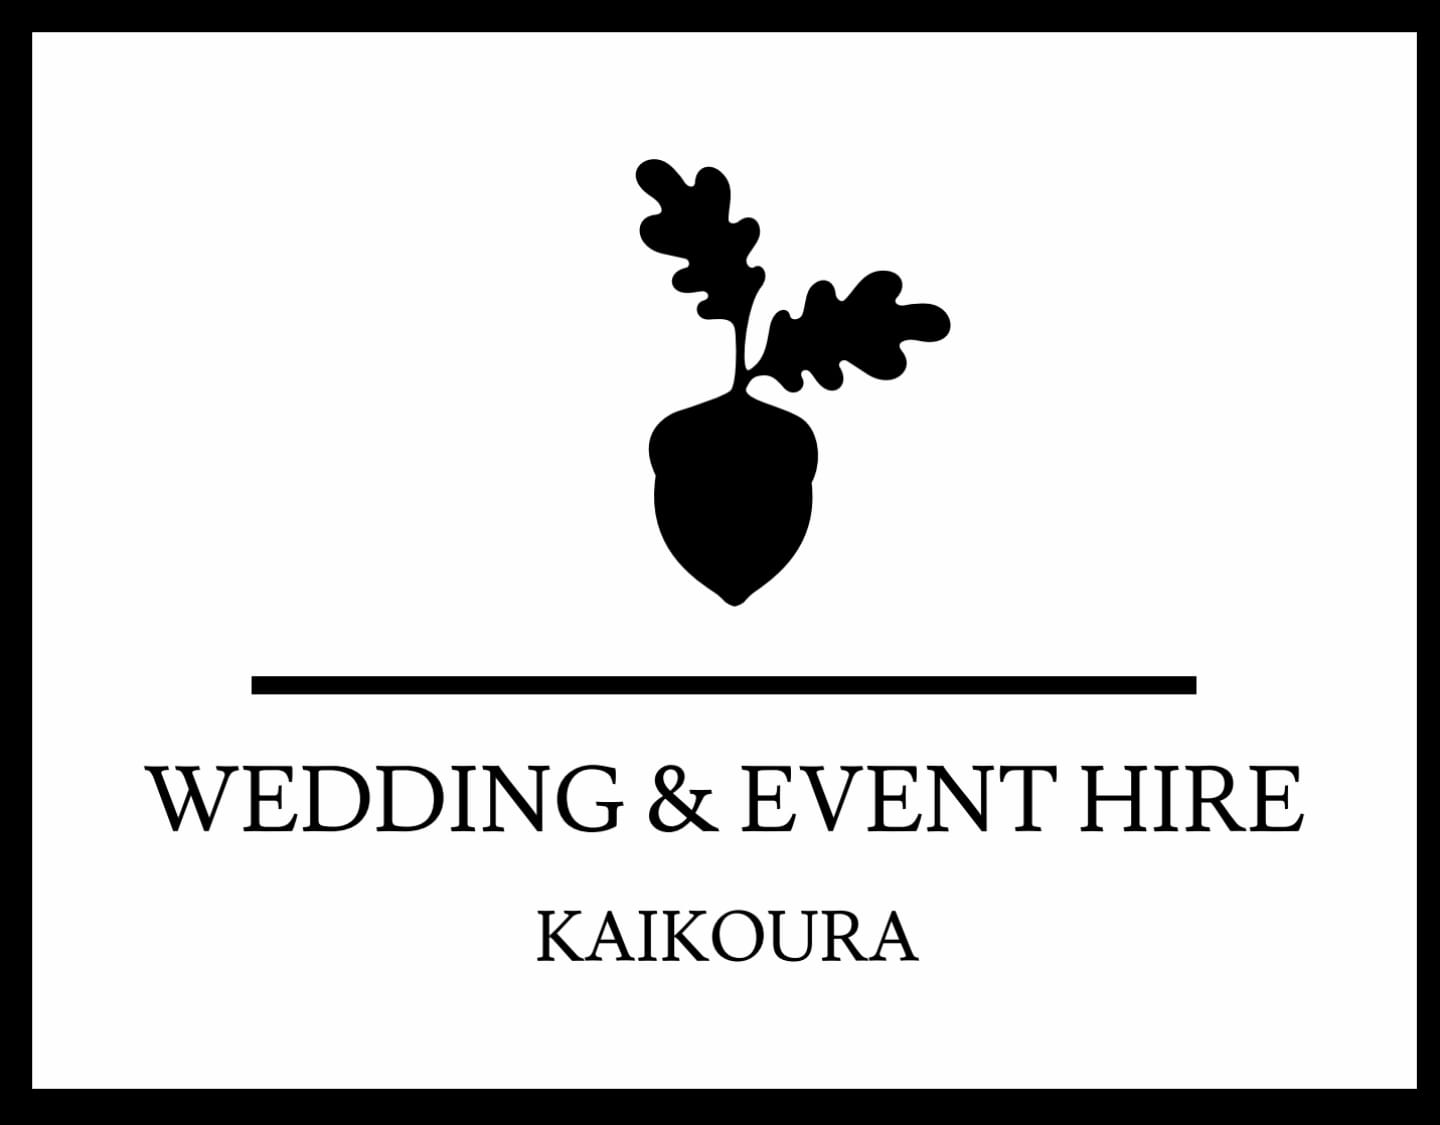 Kaikoura Wedding and Event Hire